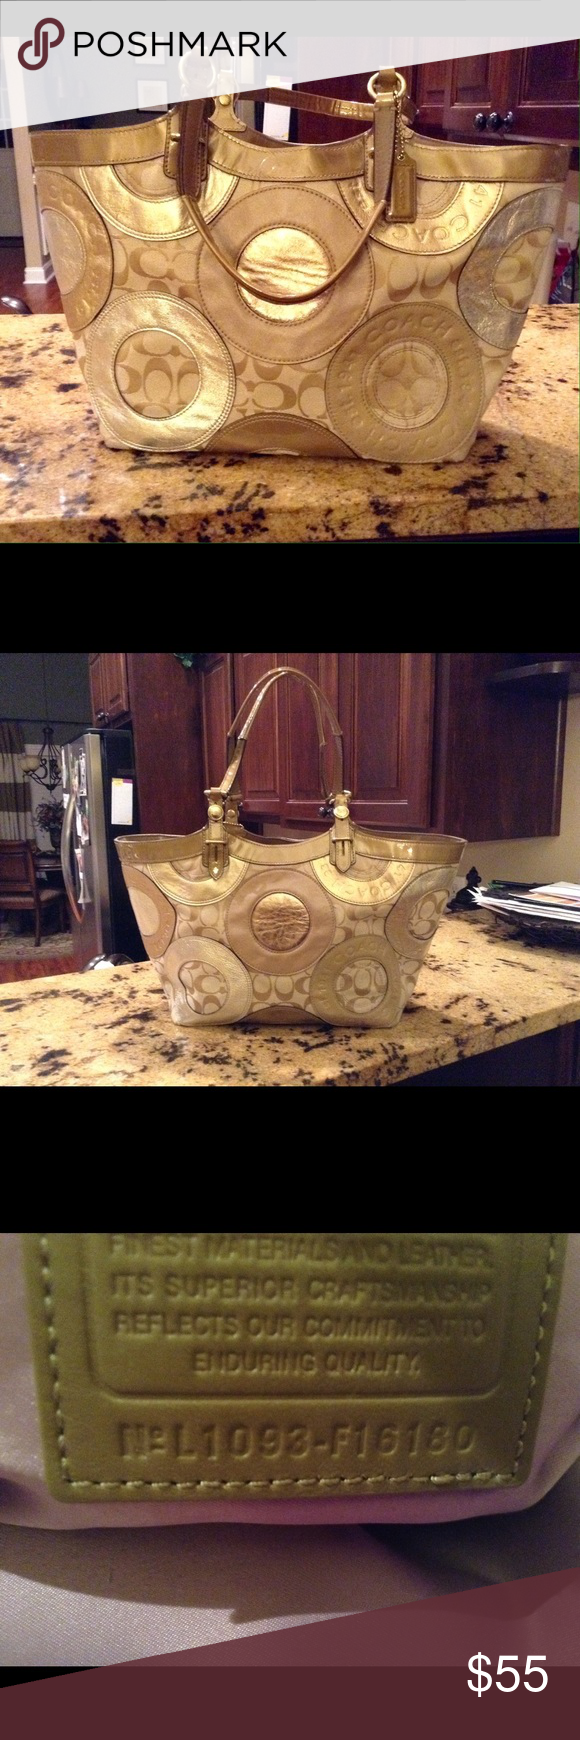 Coach purse Cute Coach bag with metallic gold colors. It is in EUC with only 2 minor marks inside the zipper compartment. Coach Bags Shoulder Bags